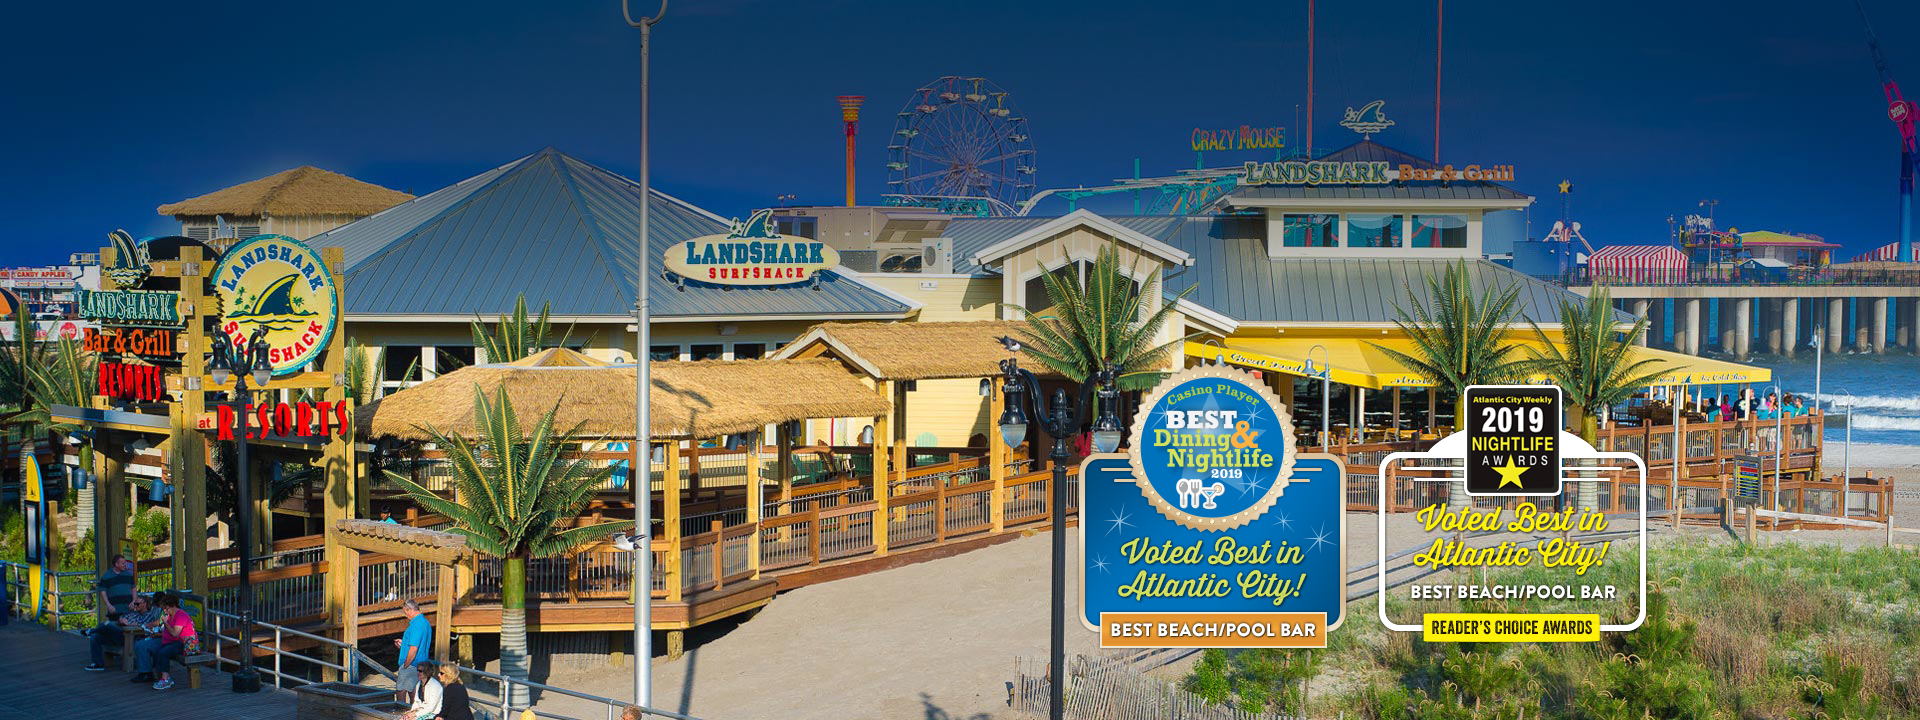 Restaurant building and text: Voted Best in Atlantic City! Best beach/pool bar. Reader's choice awards